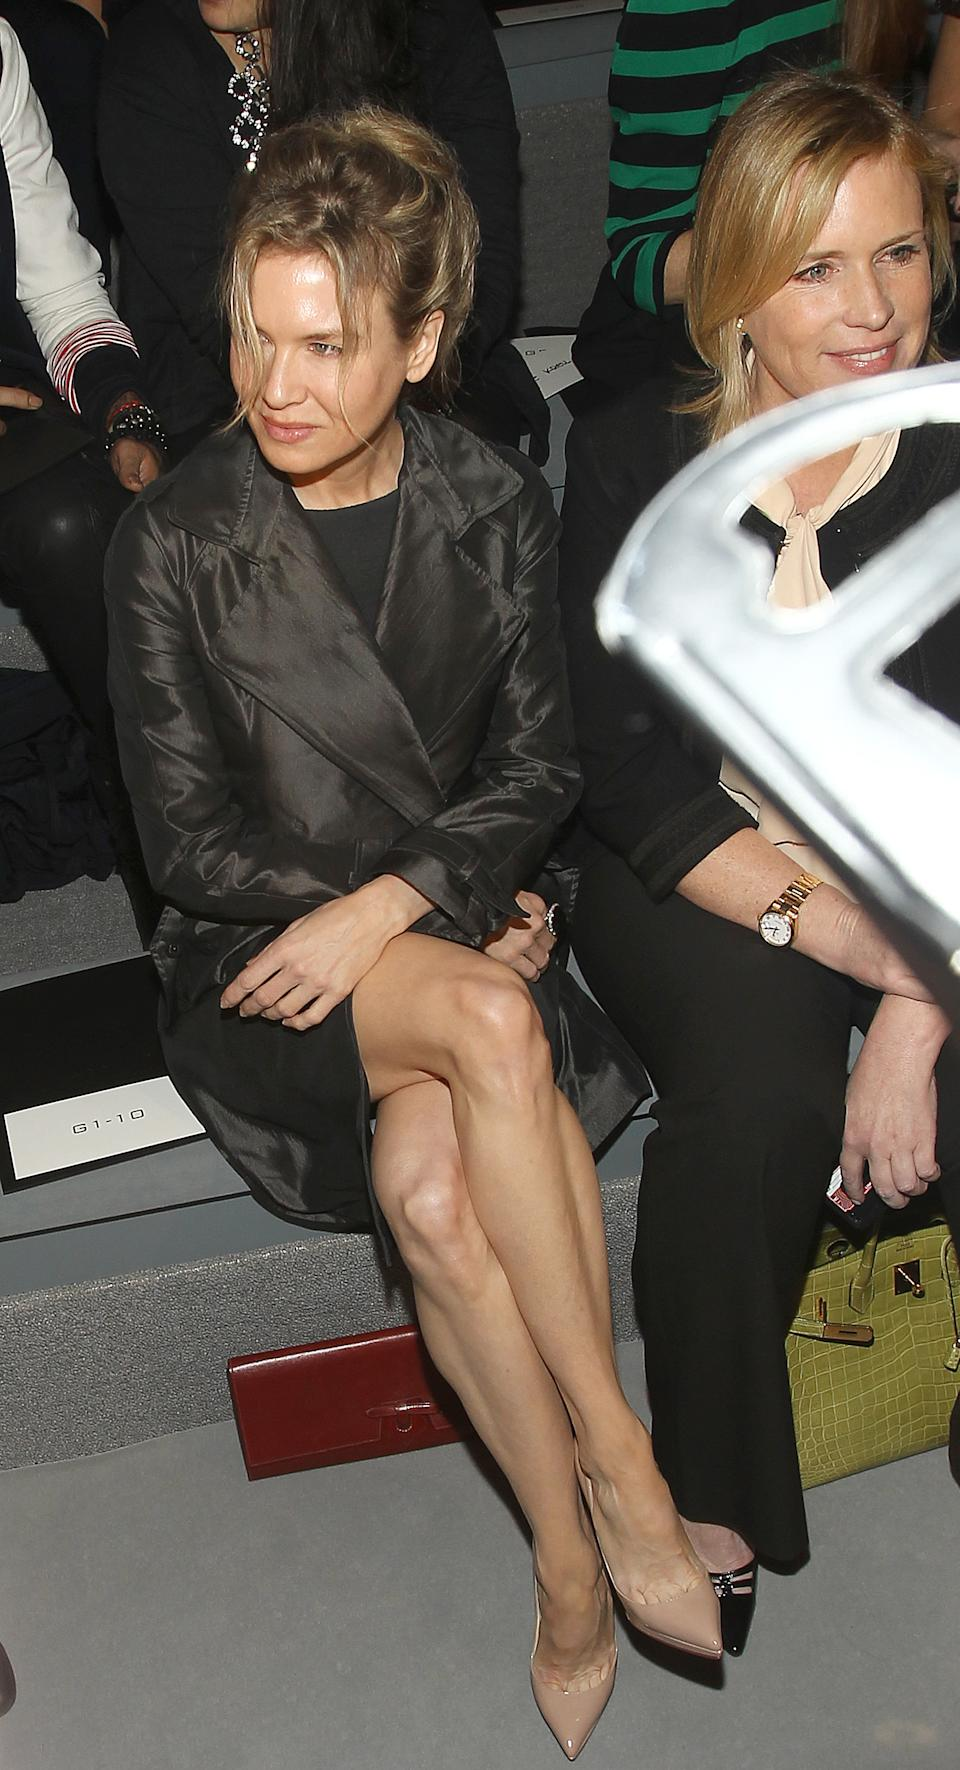 Actress Rene Zellweger attend the Vera Wang Fall 2012 show during Fashion Week in New York, Tuesday, Feb. 14, 2012. (AP Photo/ Donald Traill)